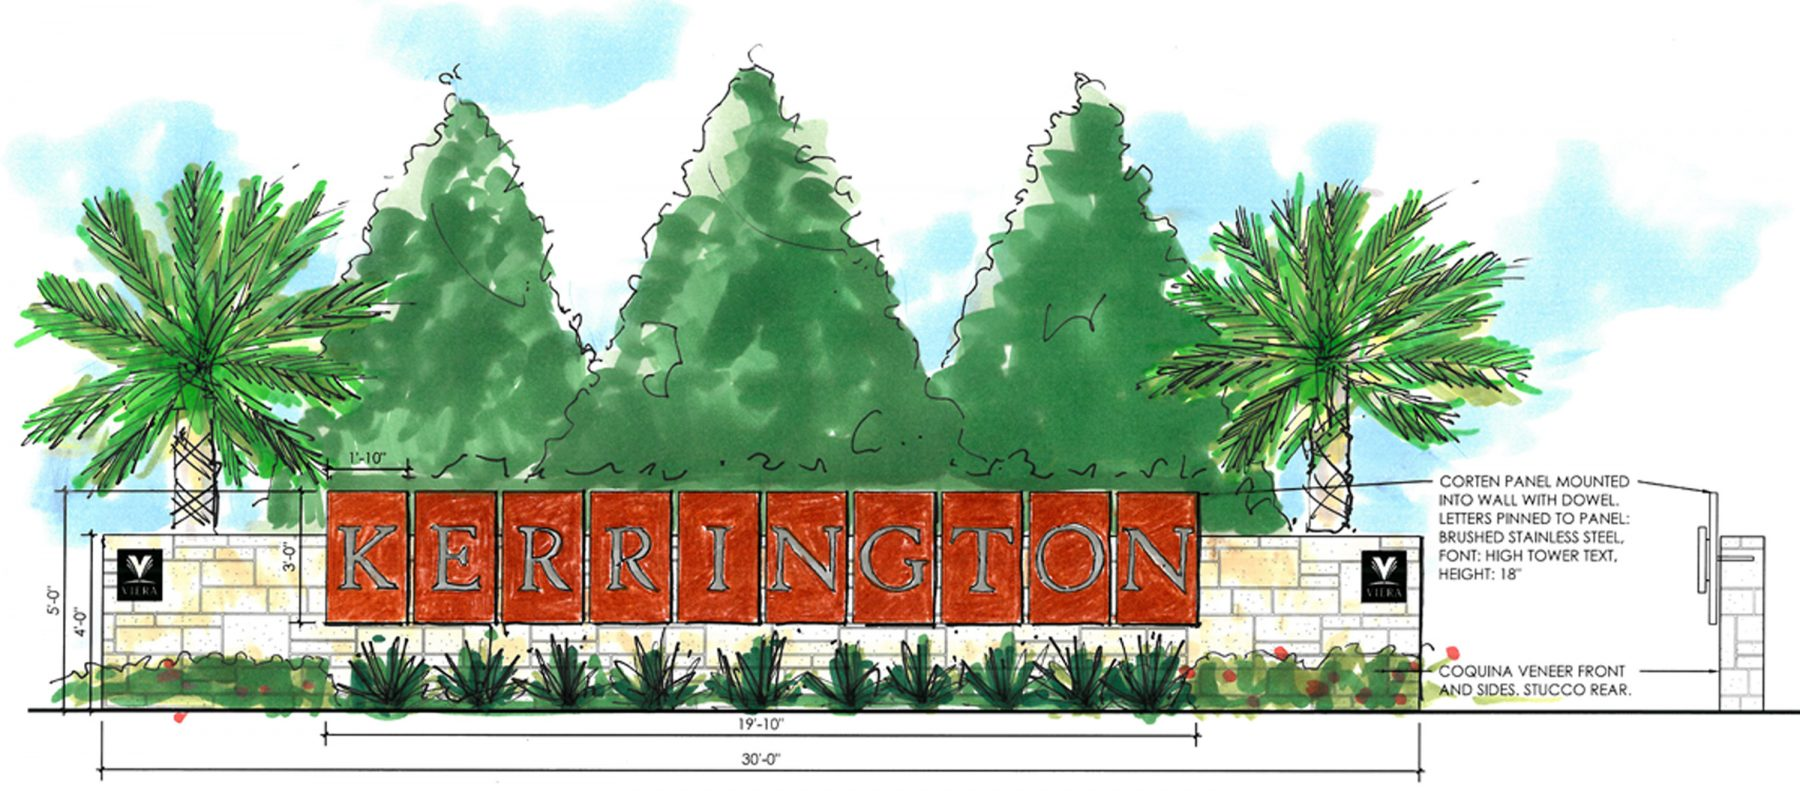 Kerrington color sign elevation web